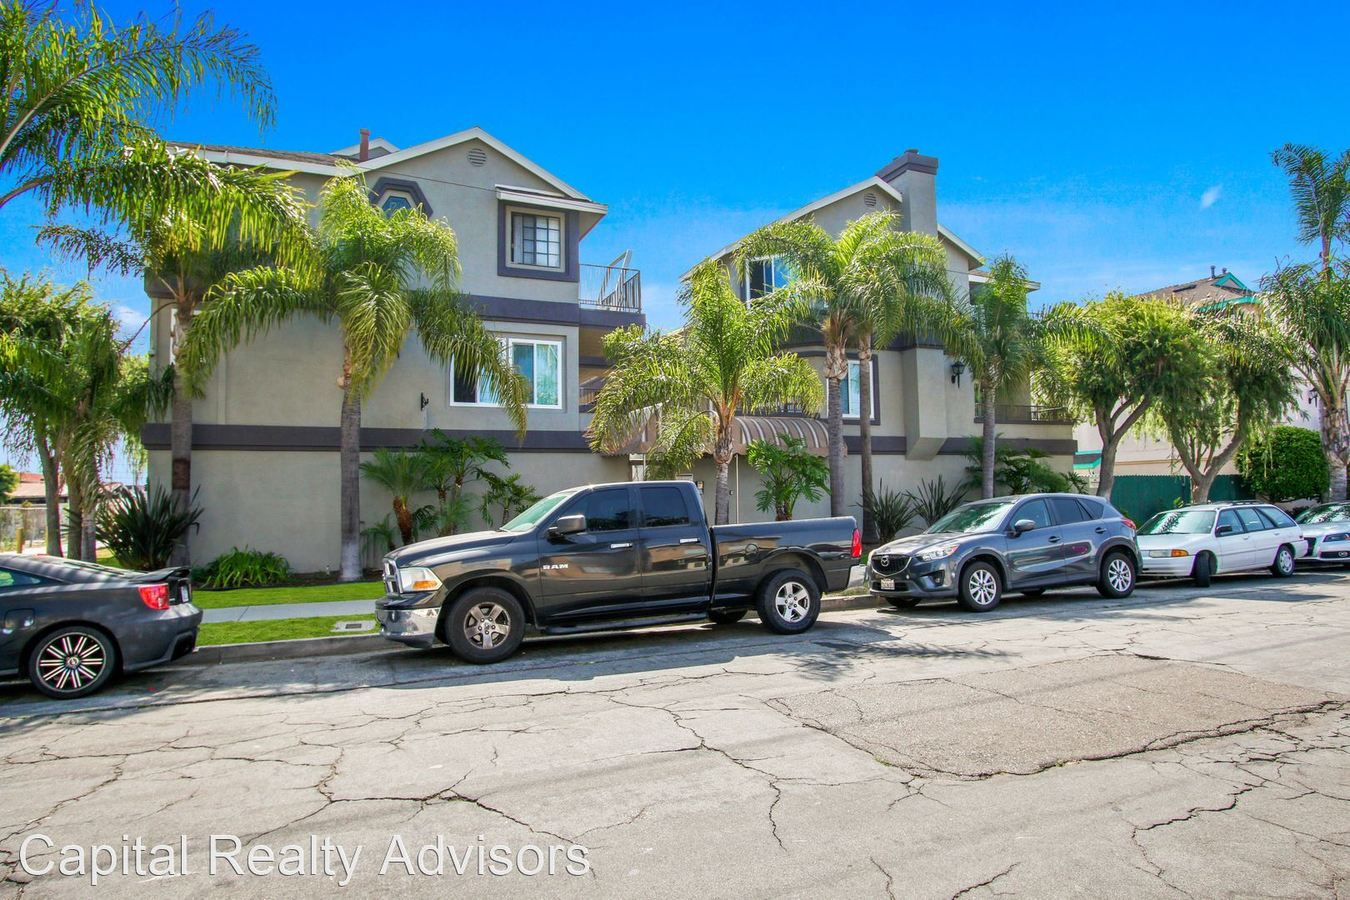 2 Bedrooms 2 Bathrooms Apartment for rent at 1190 Newport Ave in Long Beach, CA